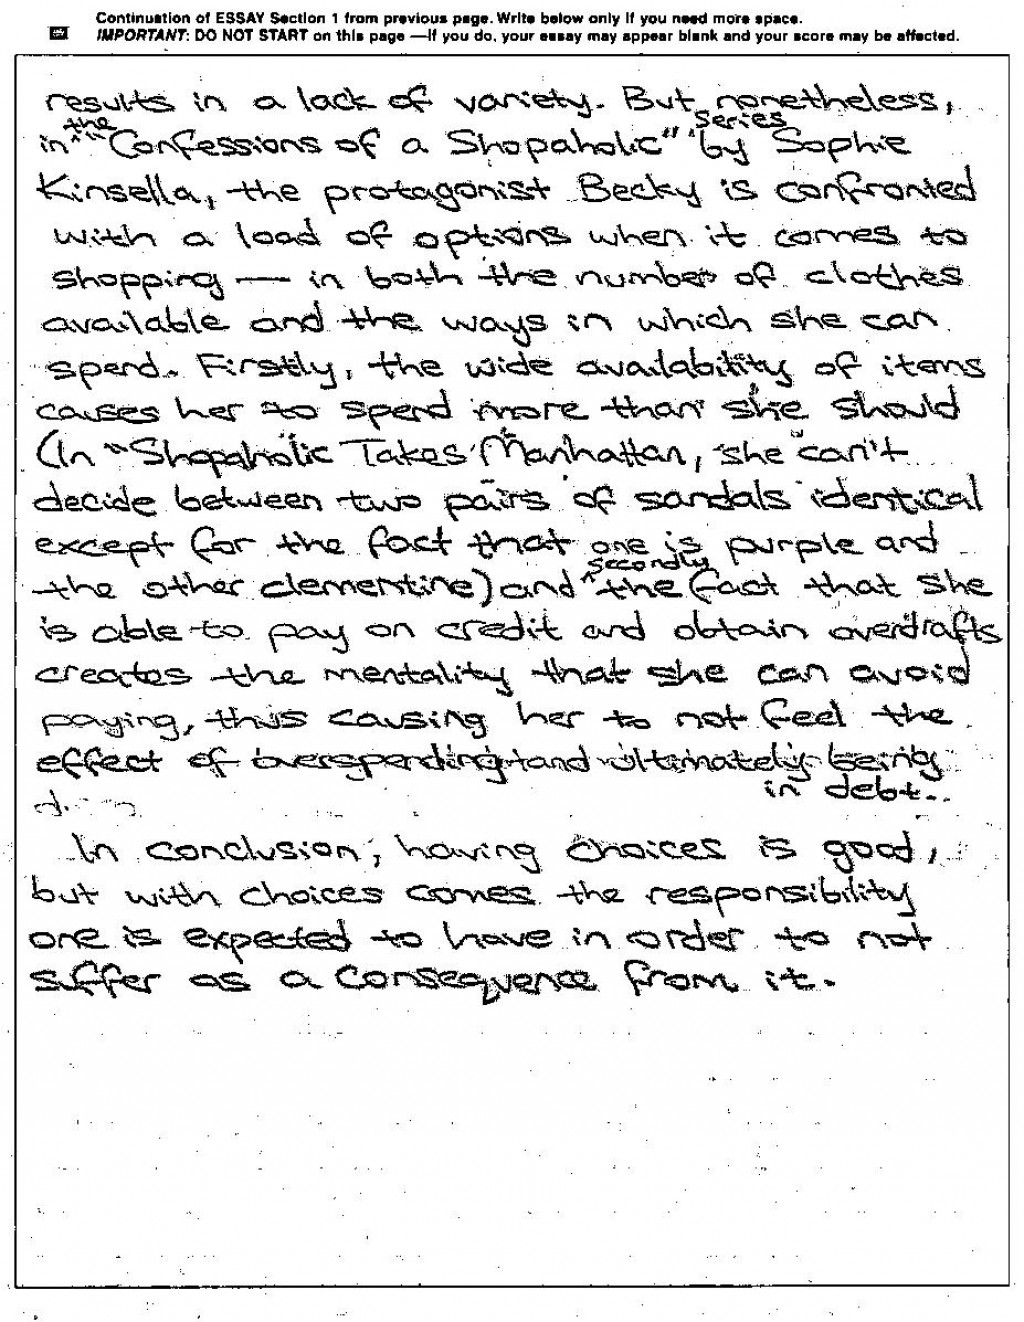 009 Essay Example Best Tips Incredible Large